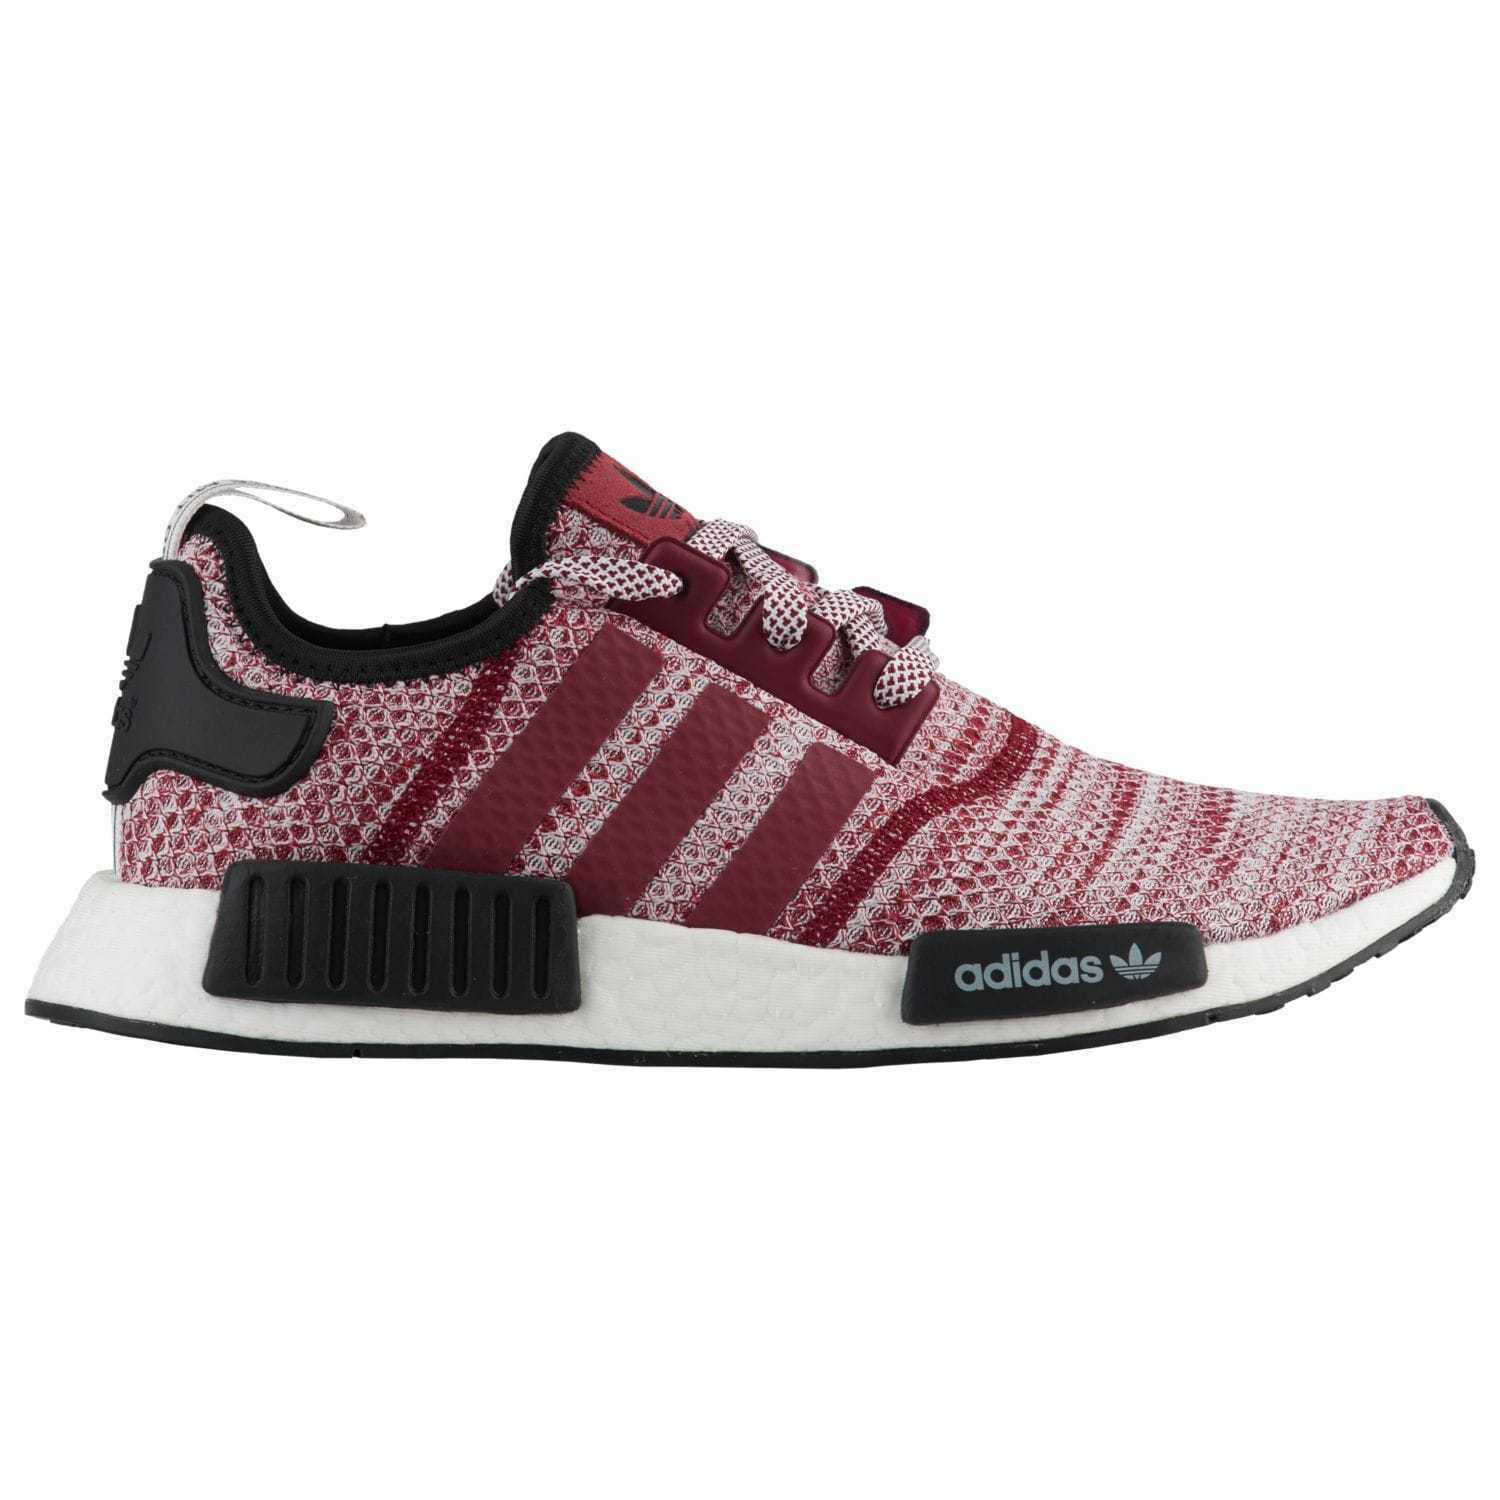 Adidas NMD_R1 Runner Nomad Burgundy Reflective Red White